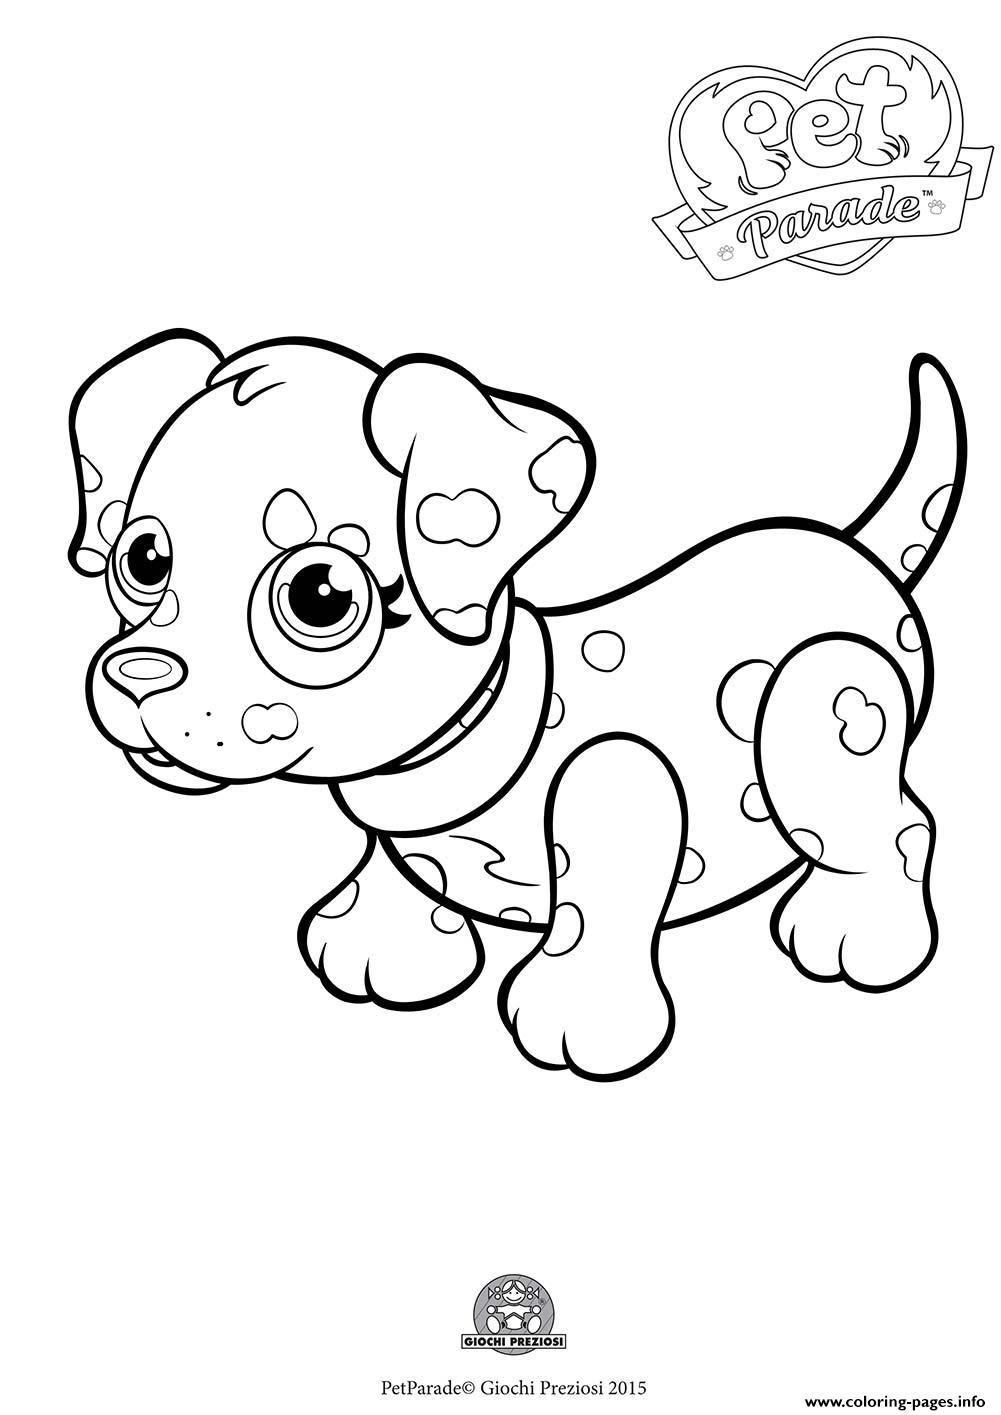 1001x1415 Pet Parade Cute Dog Dalmatian Coloring Pages Printable